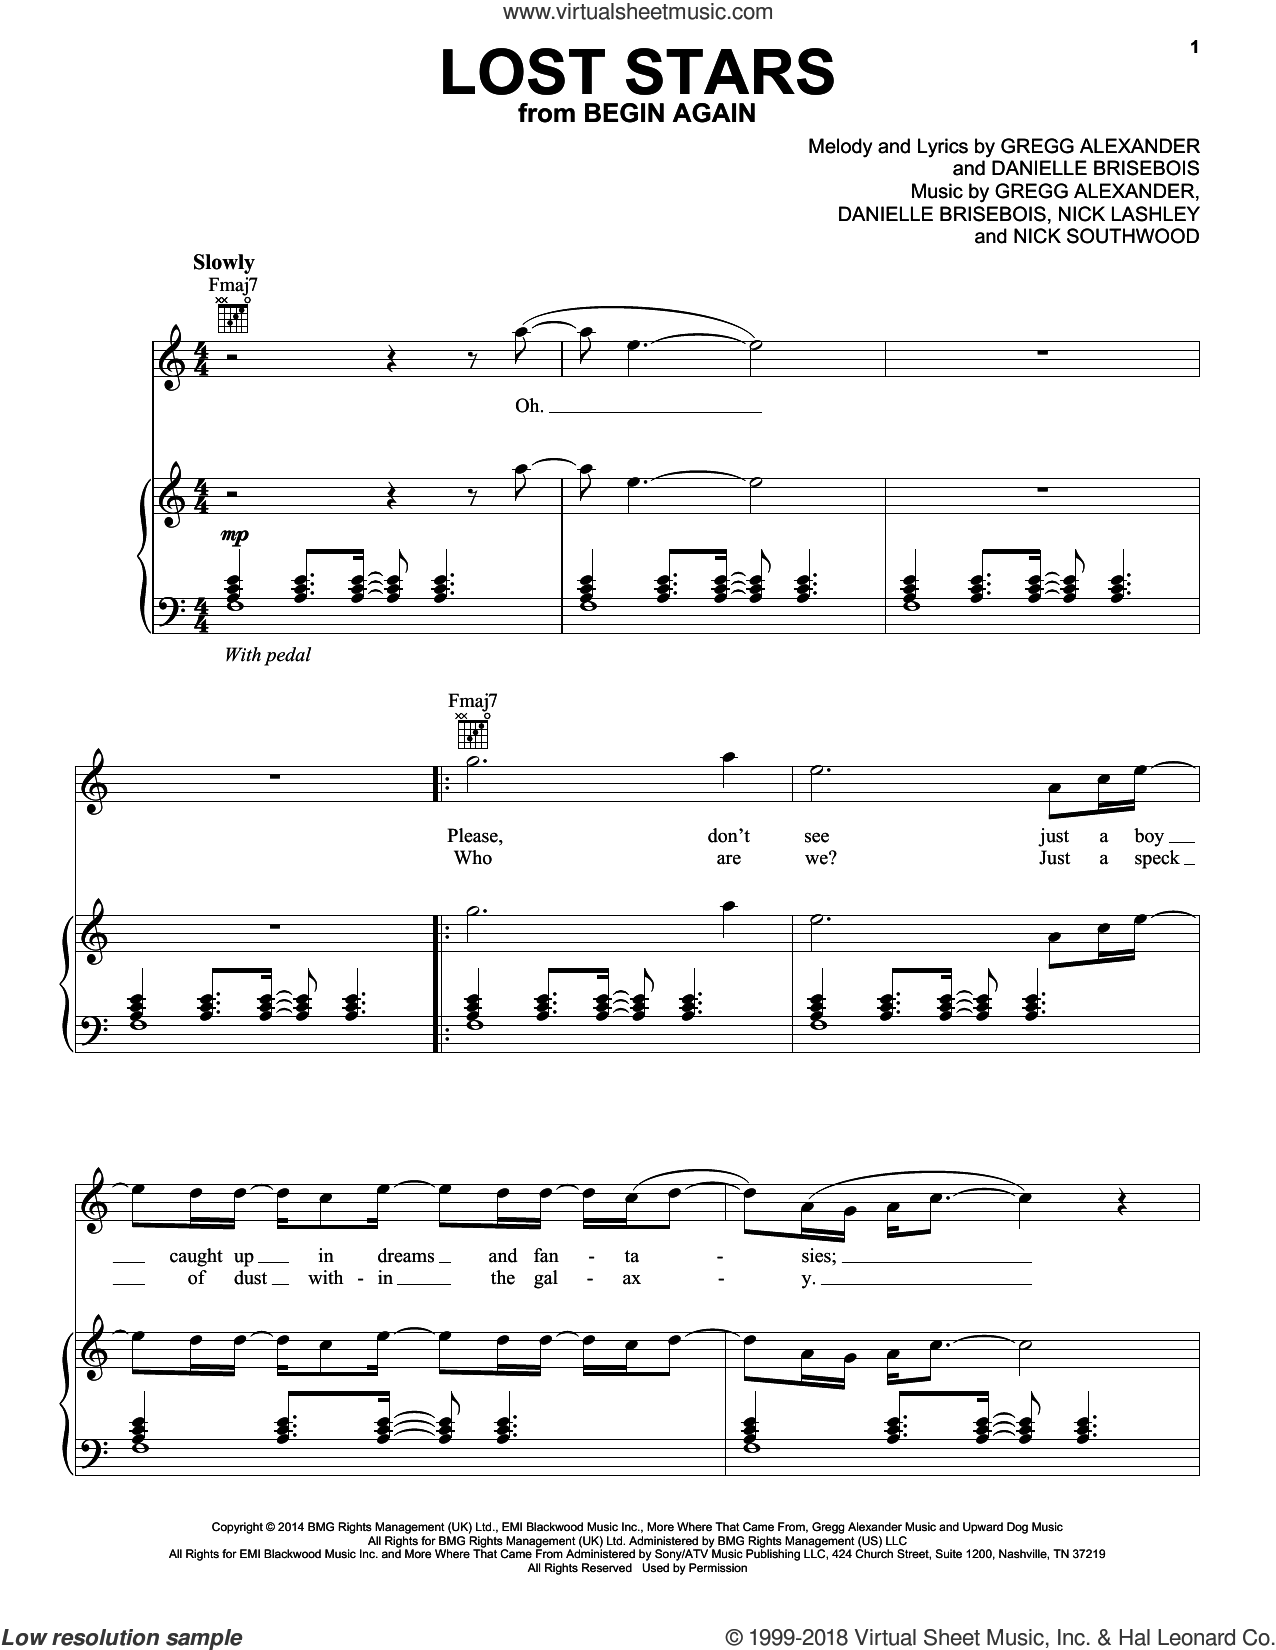 Lost Stars sheet music for voice, piano or guitar by Maroon 5, Danielle Brisebois and Gregg Alexander, intermediate. Score Image Preview.